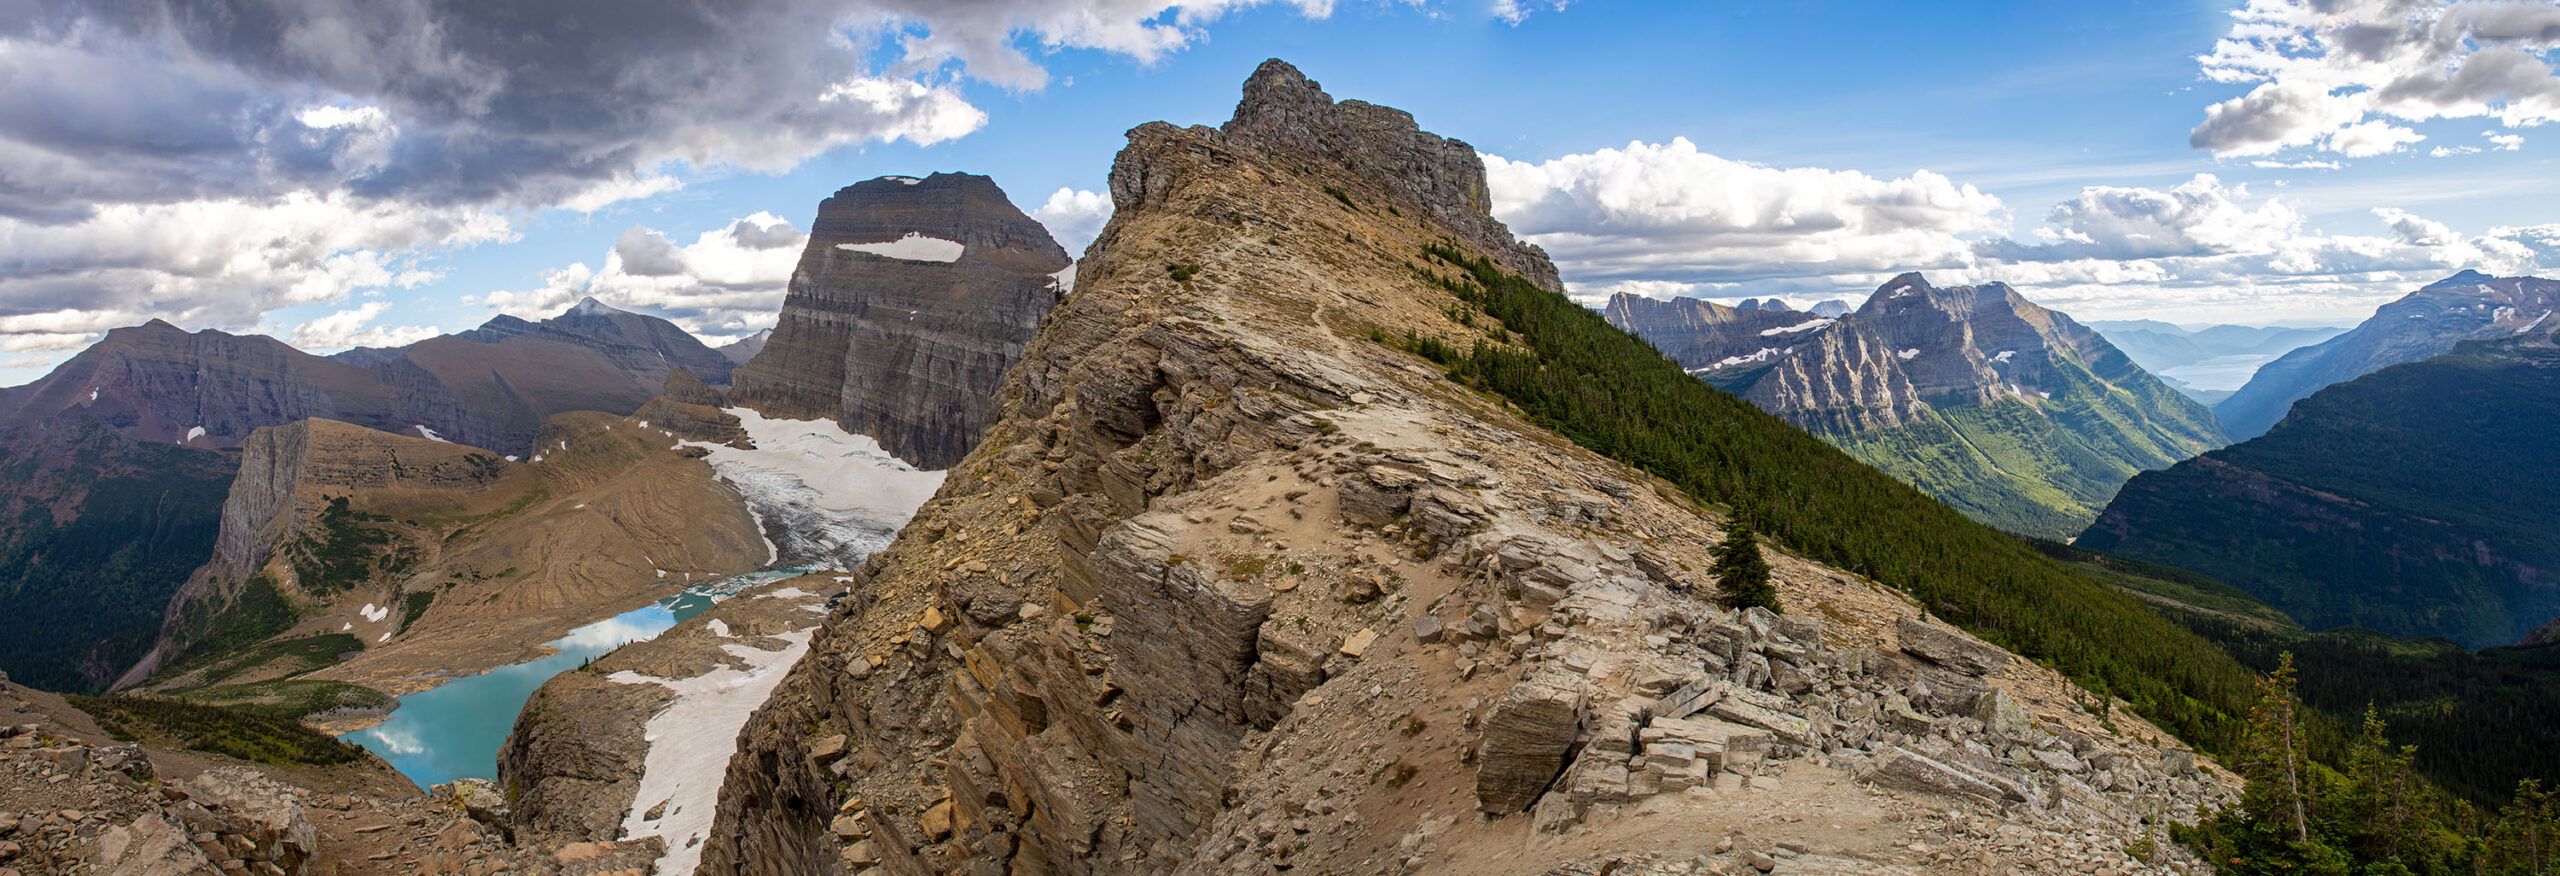 Highline Trail & Grinnell Glacier Overlook